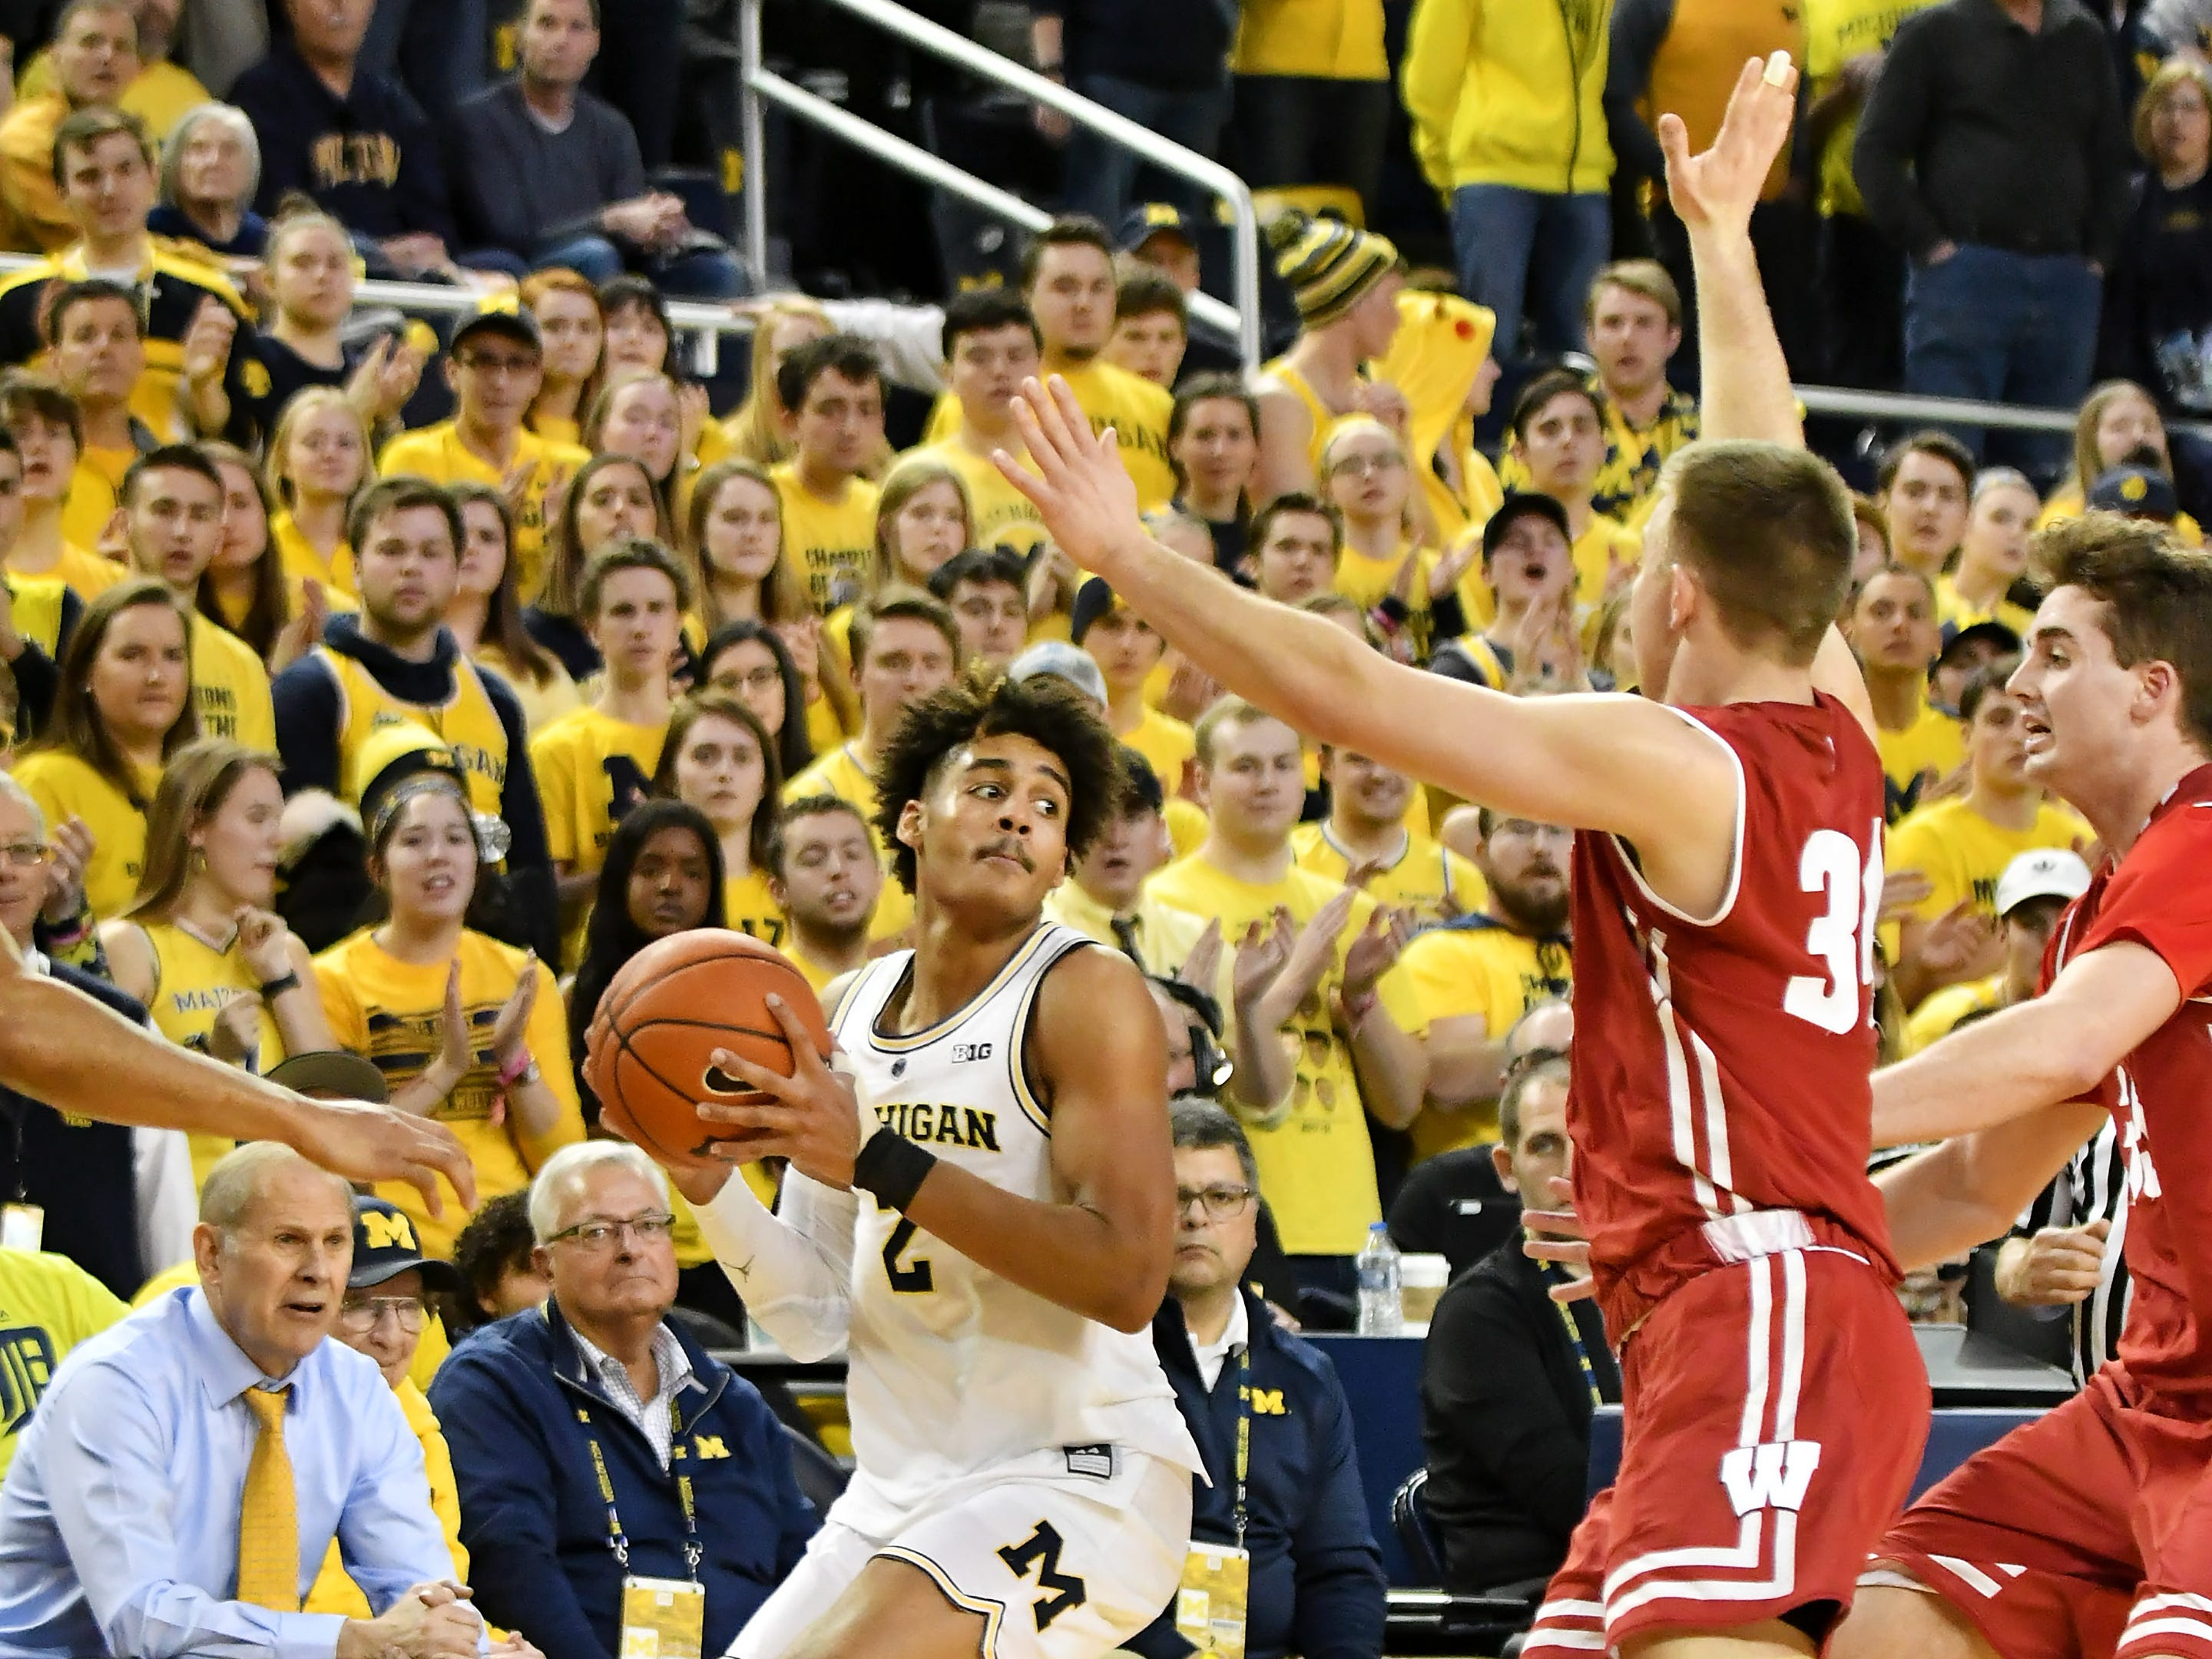 Wisconsin guard Brad Davison (34) and Wisconsin forward Nate Reuvers, right, come over to pressure Michigan guard Jordan Poole (2) in the second half.